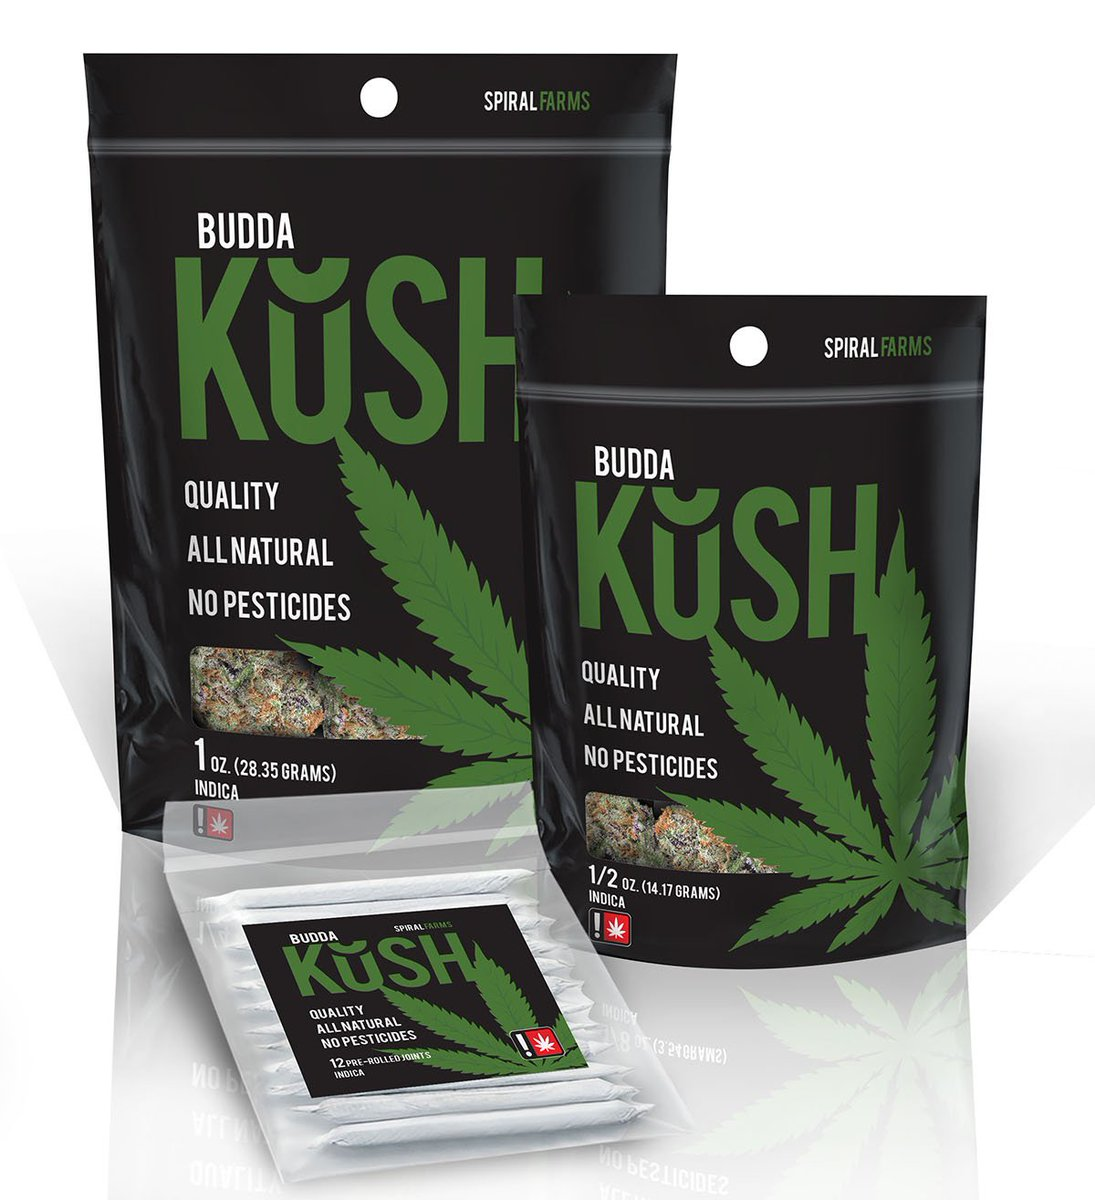 Building great #cannabis Brands is all we do! #graphicdesign #branding #staylit<br>http://pic.twitter.com/akL5yk491u